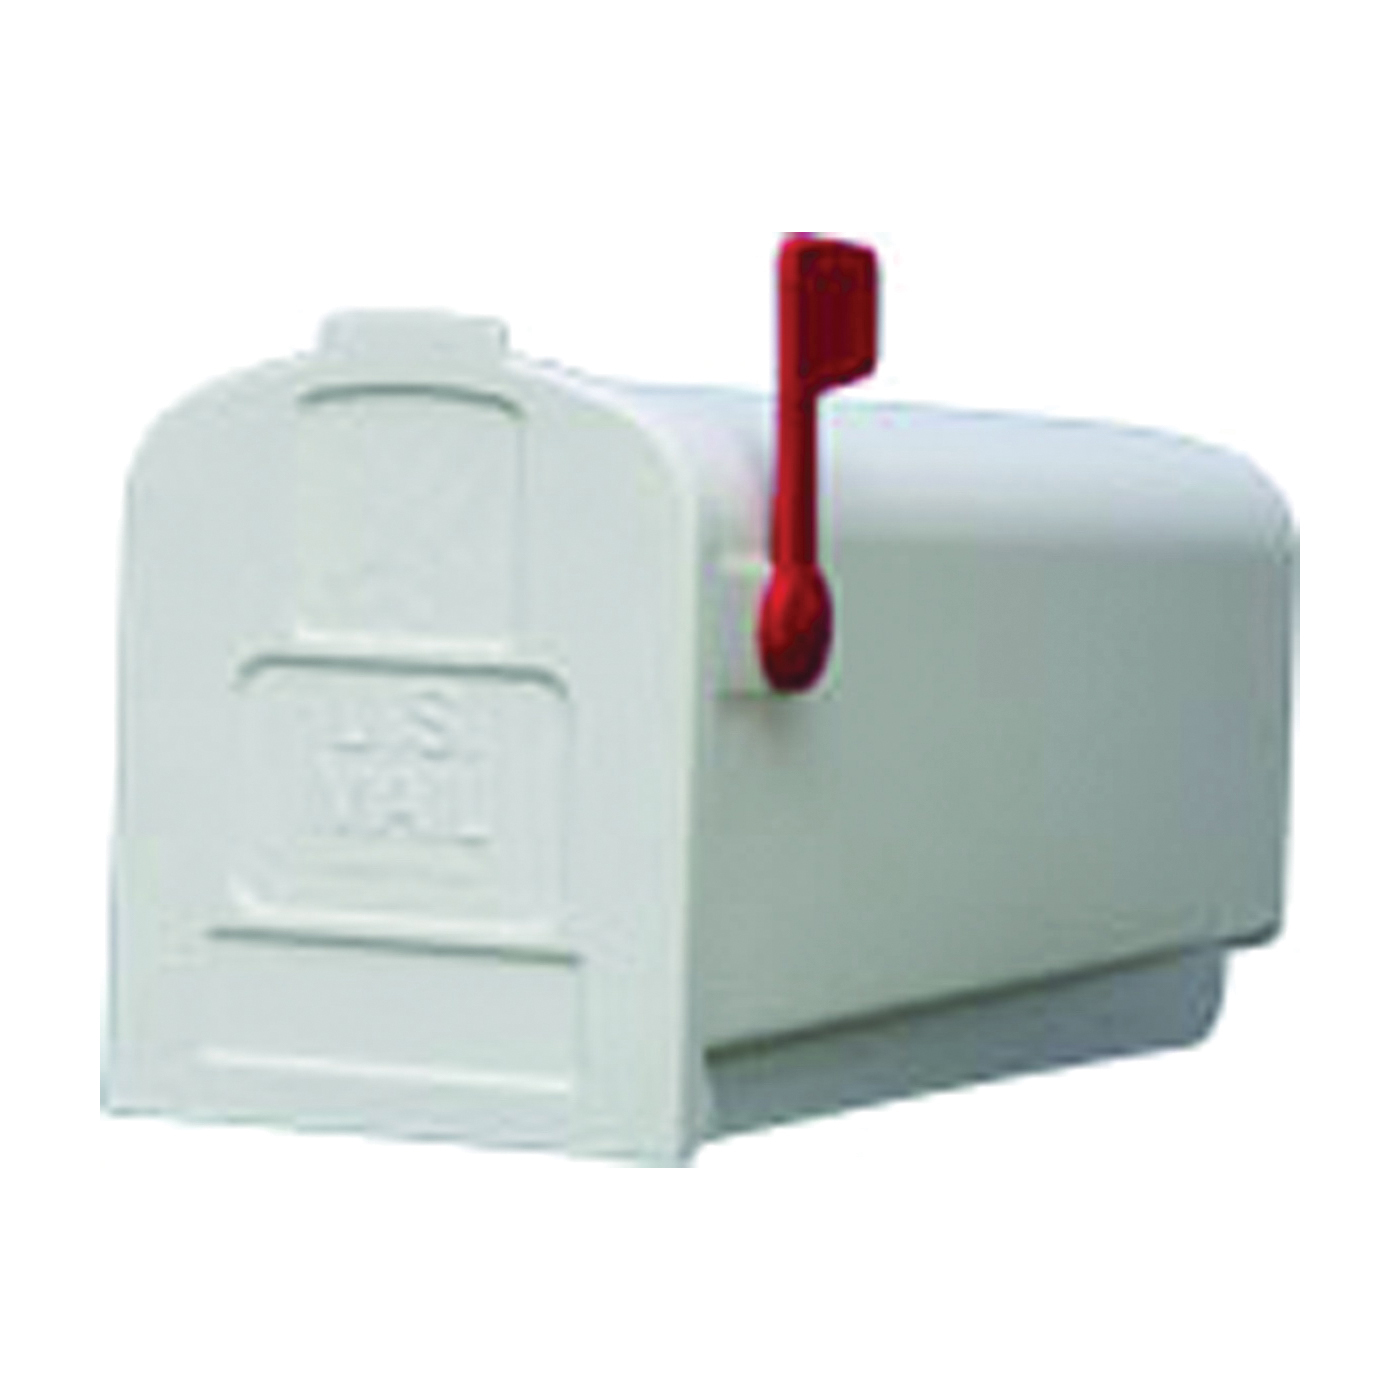 Picture of Gibraltar Mailboxes Parson PL10W0201 Rural Mailbox, 875 cu-in Capacity, Plastic, 7.9 in W, 19.4 in D, 9.6 in H